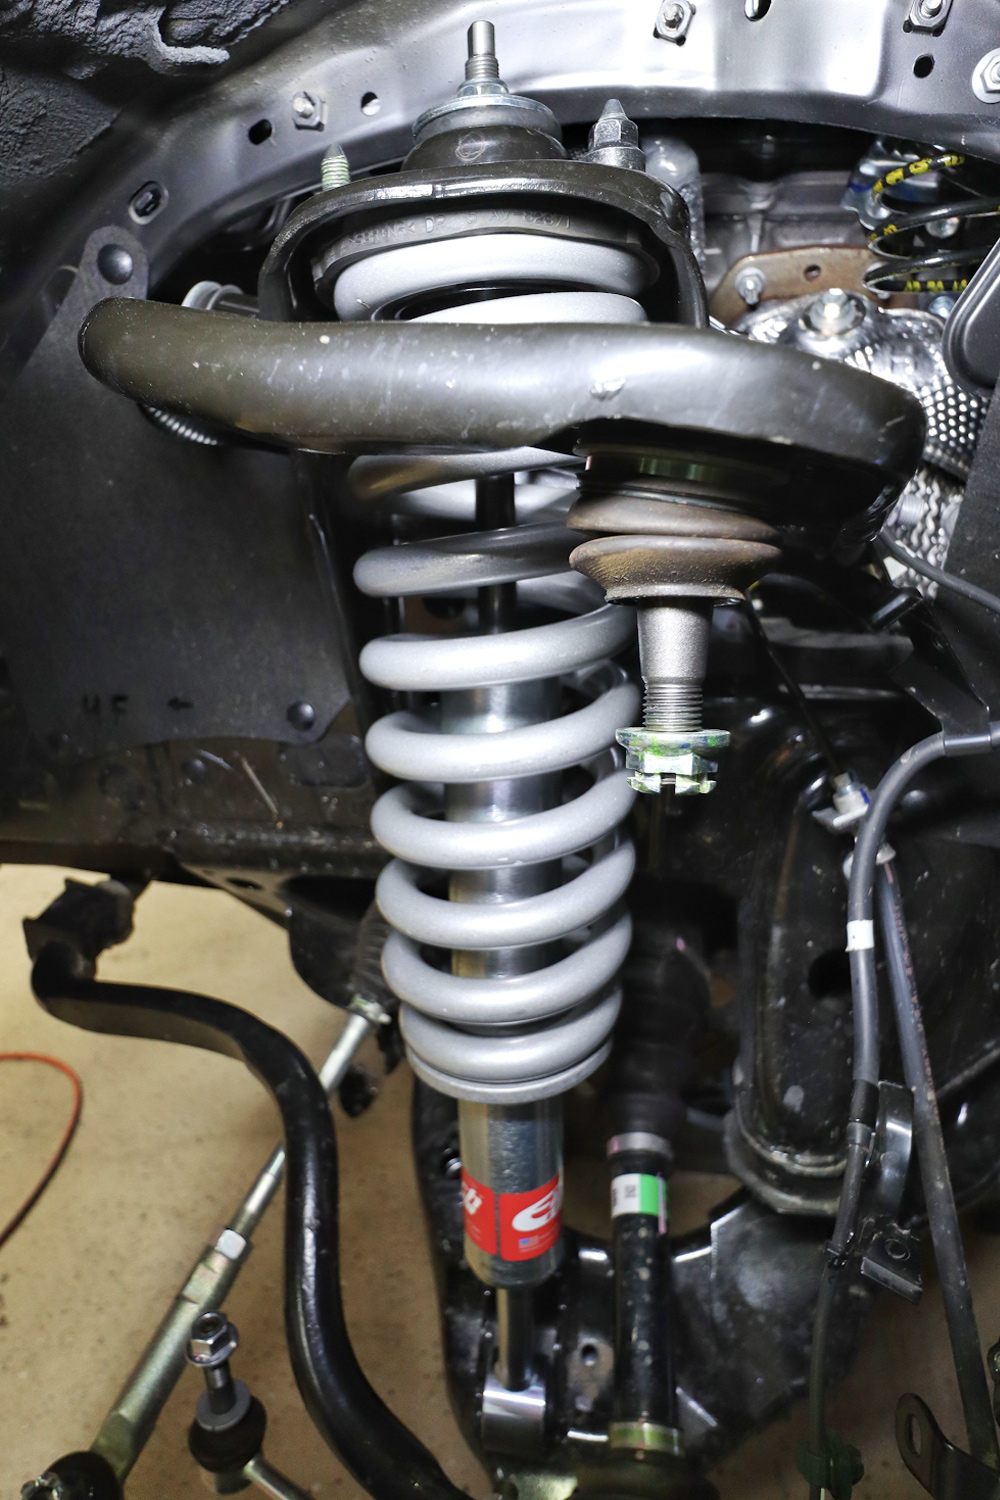 Eibach Pro-Truck Stage 1 Lift System - DIY Install + Overview For the 2020 3rd Gen Tacoma: STEP 13. INSTALL THE NEW EIBACH COILOVER